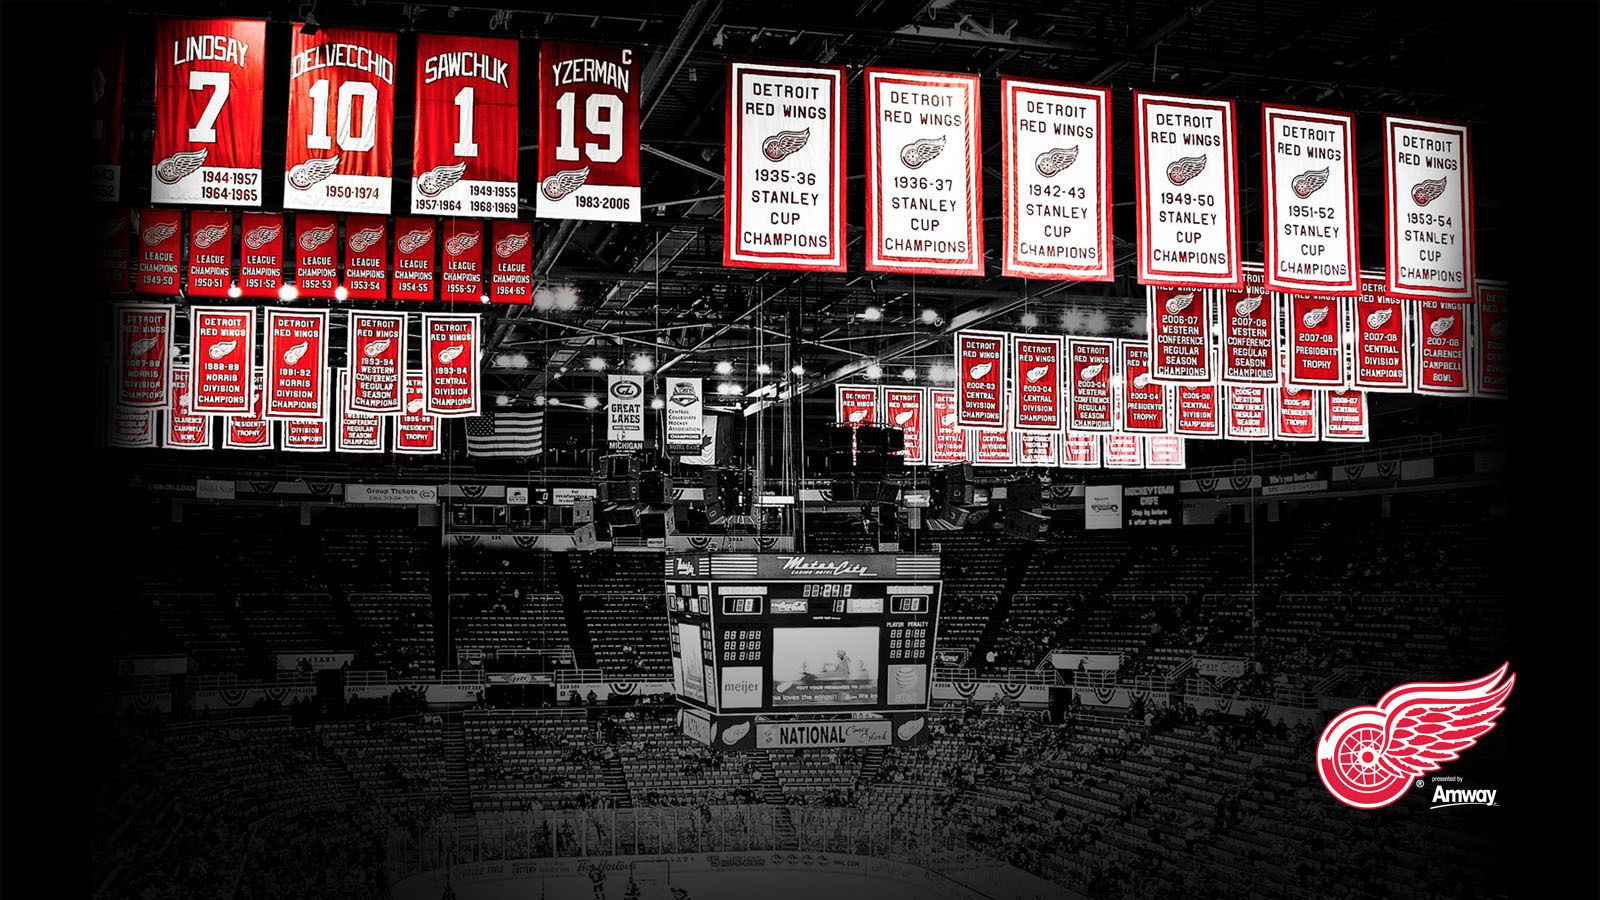 T.B S5 Detroit-red-wings-wallpaper-38